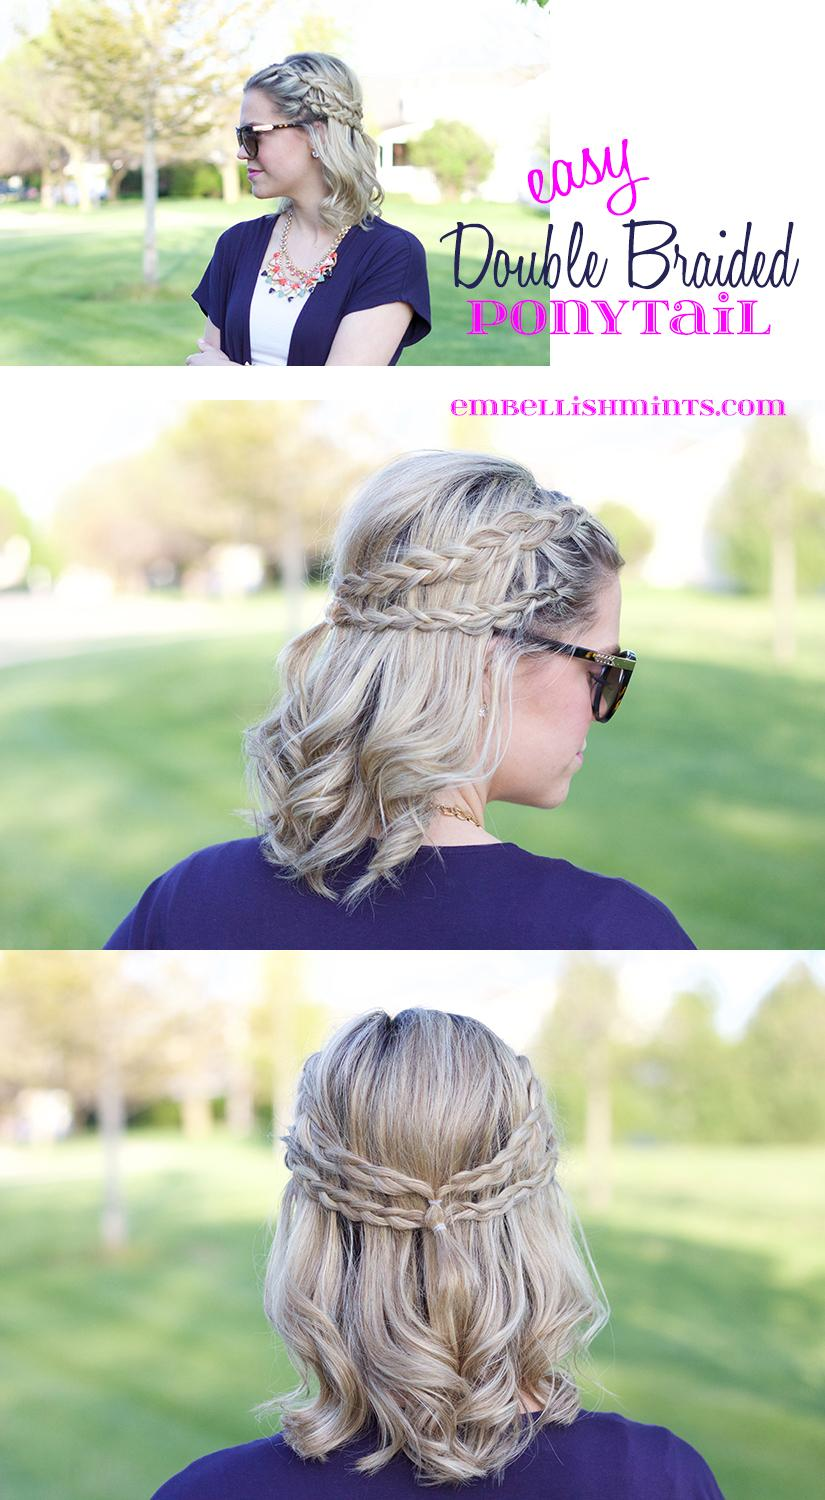 Easy Double Braided Ponytail is a great way to dress up your outfit for casual days. It's easy and you can do it yourself in minutes. www.Embellishmints.com